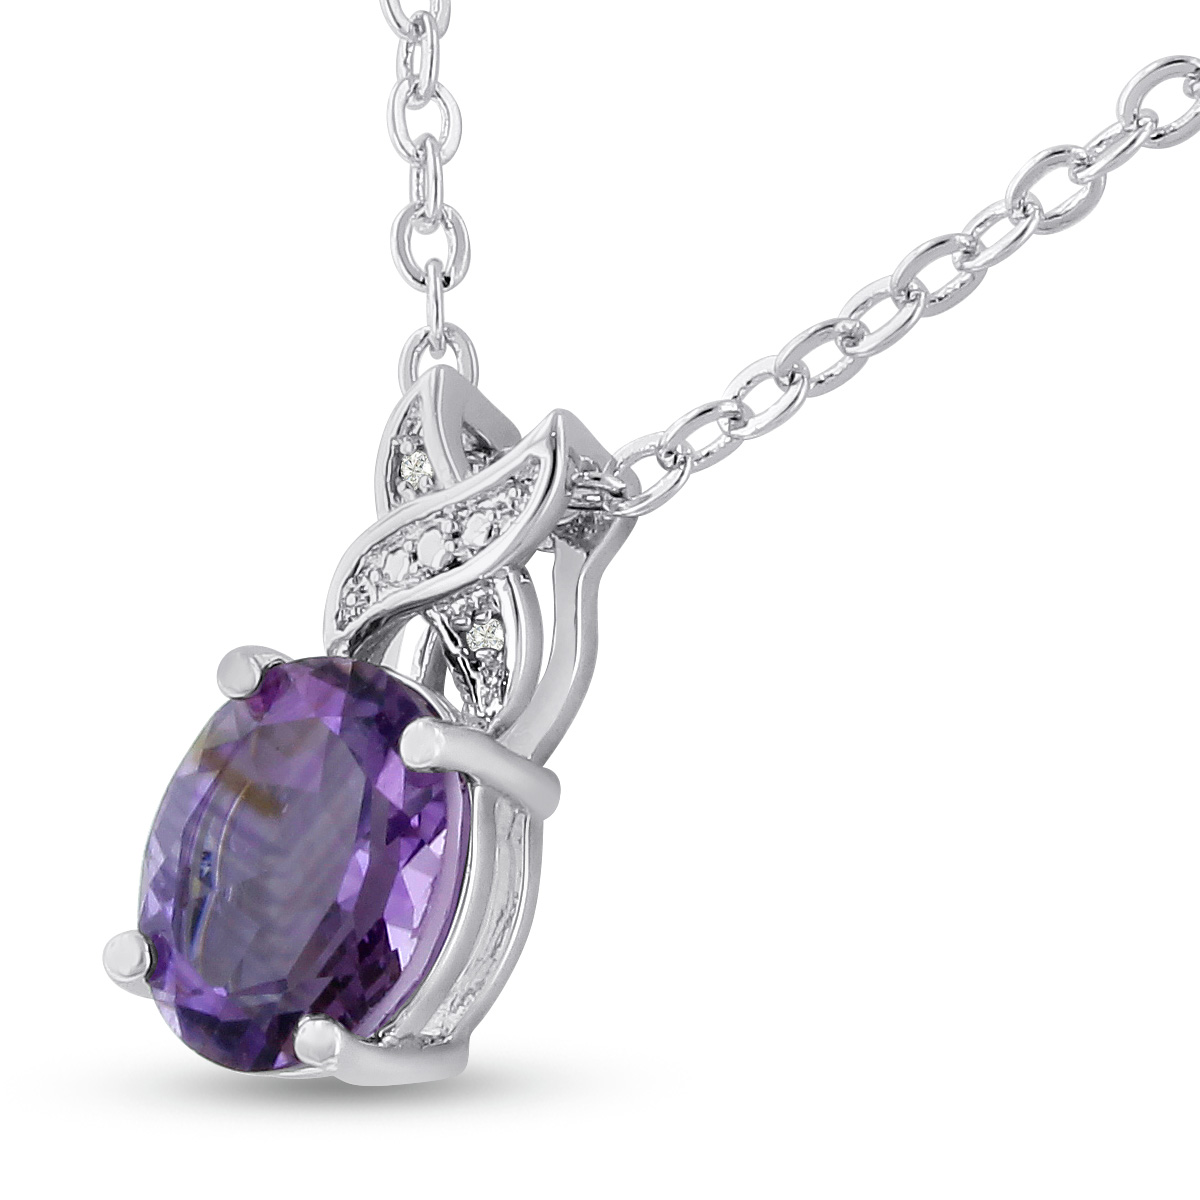 Platinum Plated 3 1 2 Carat Oval Shape Amethyst and Diamond Necklace,